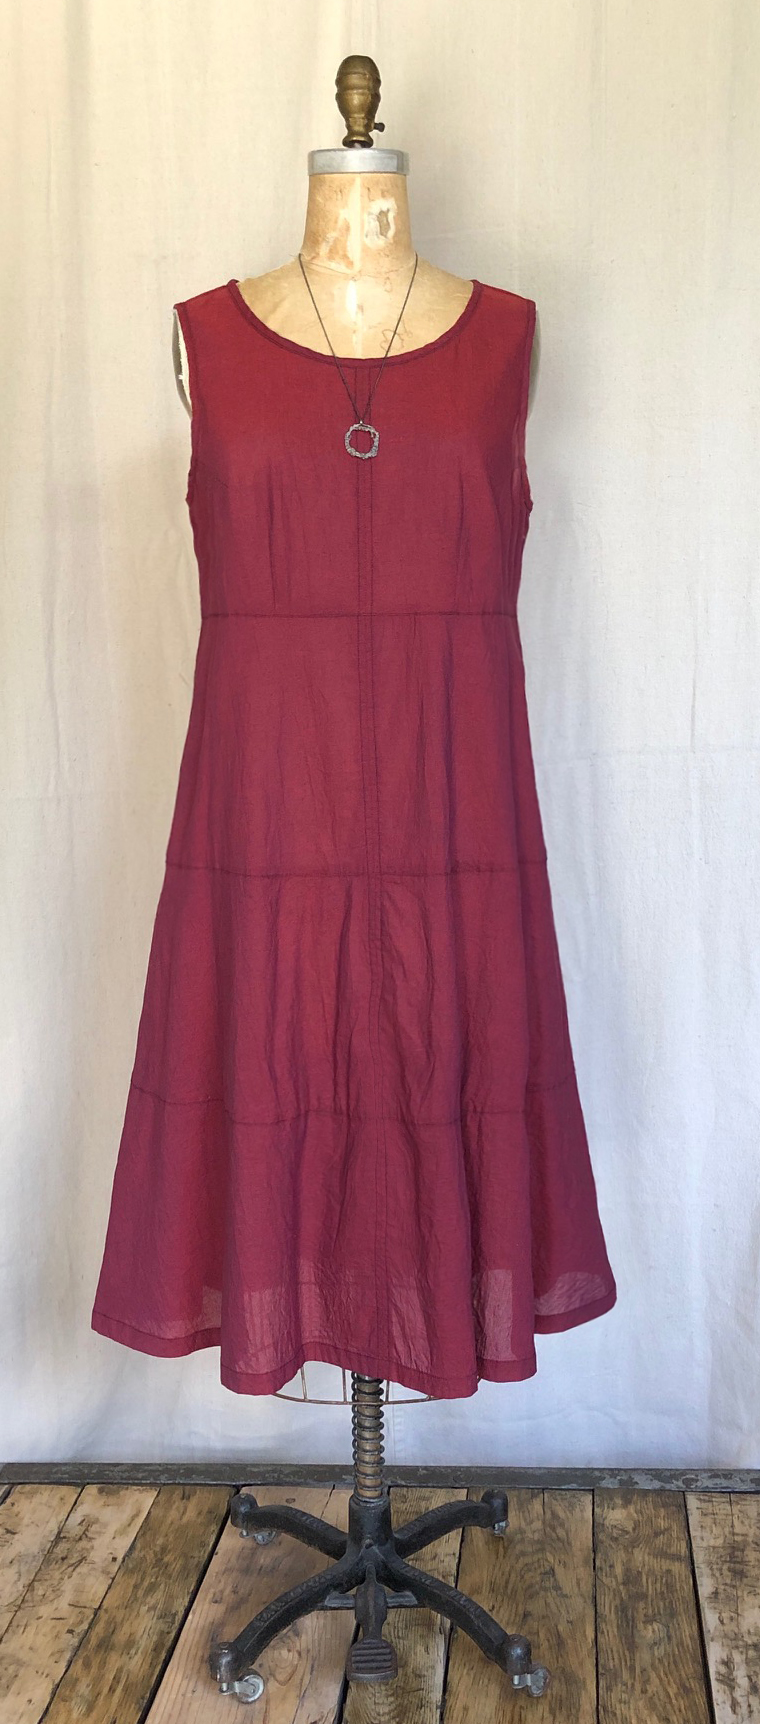 sp19red tiers dress.jpg